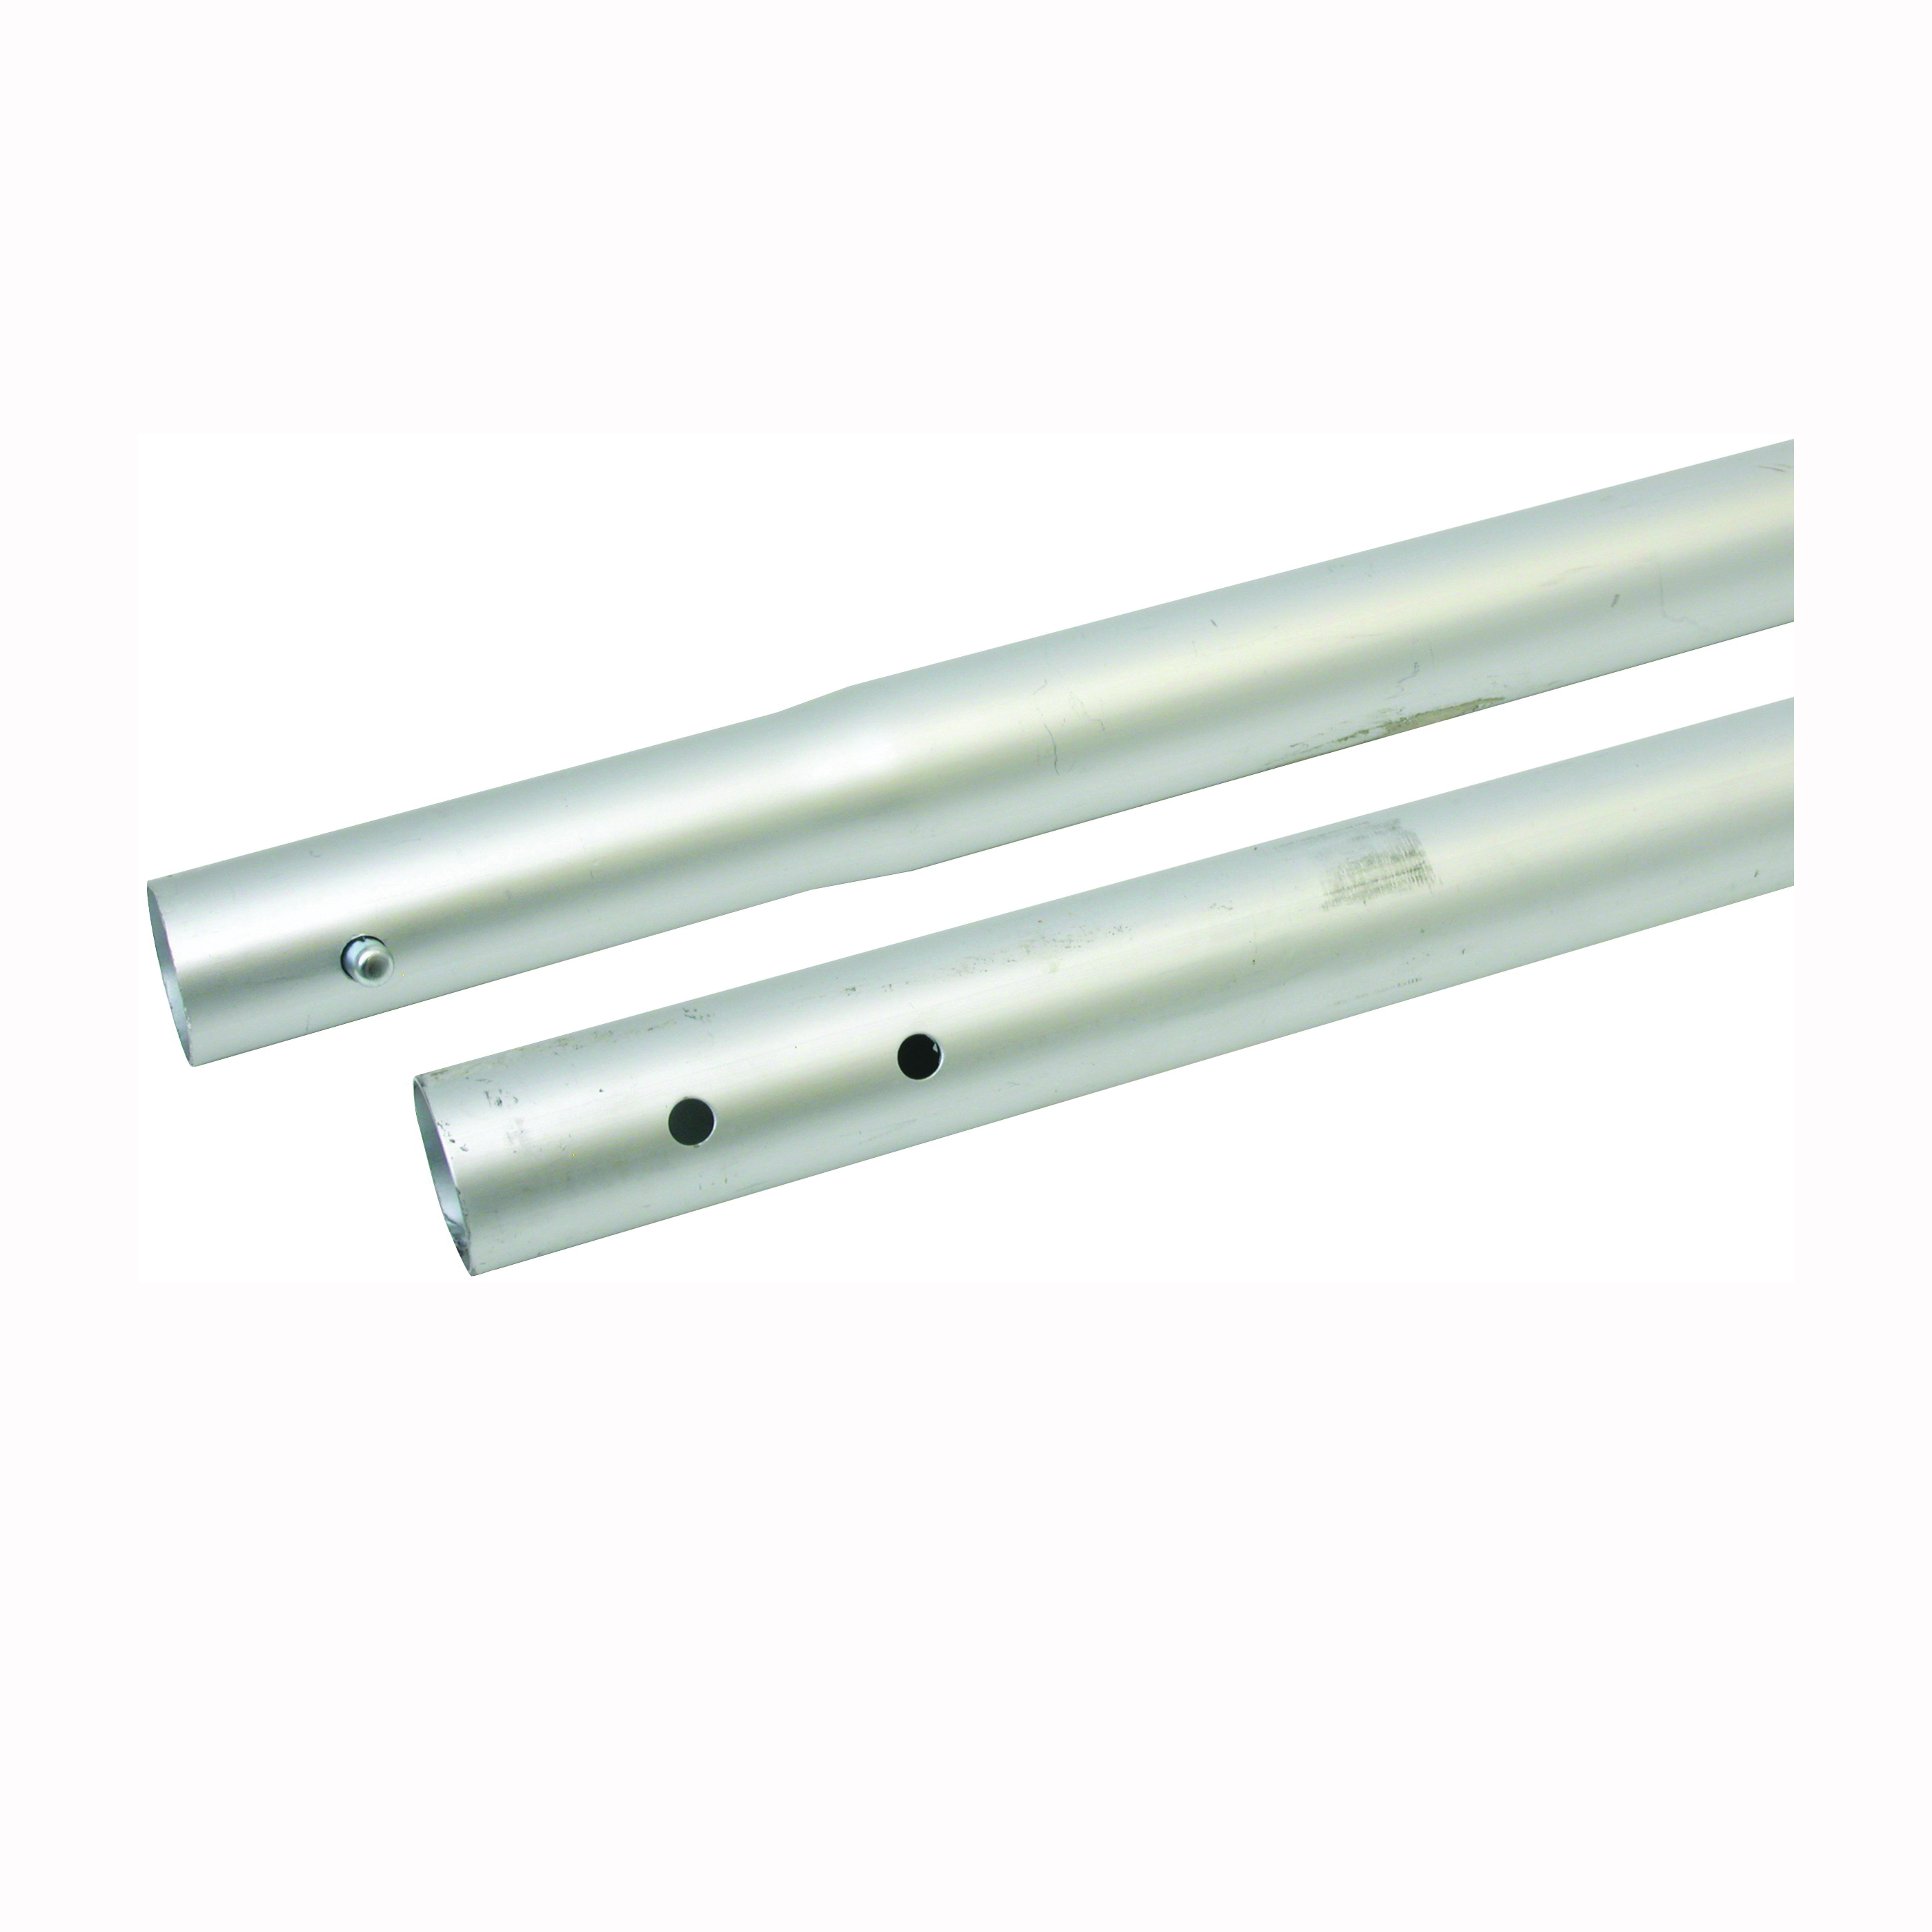 Picture of Marshalltown PB72L Handle Section, 1-3/4 in Dia, 72 in L, Aluminum, For: BFKIT1 Bull Float